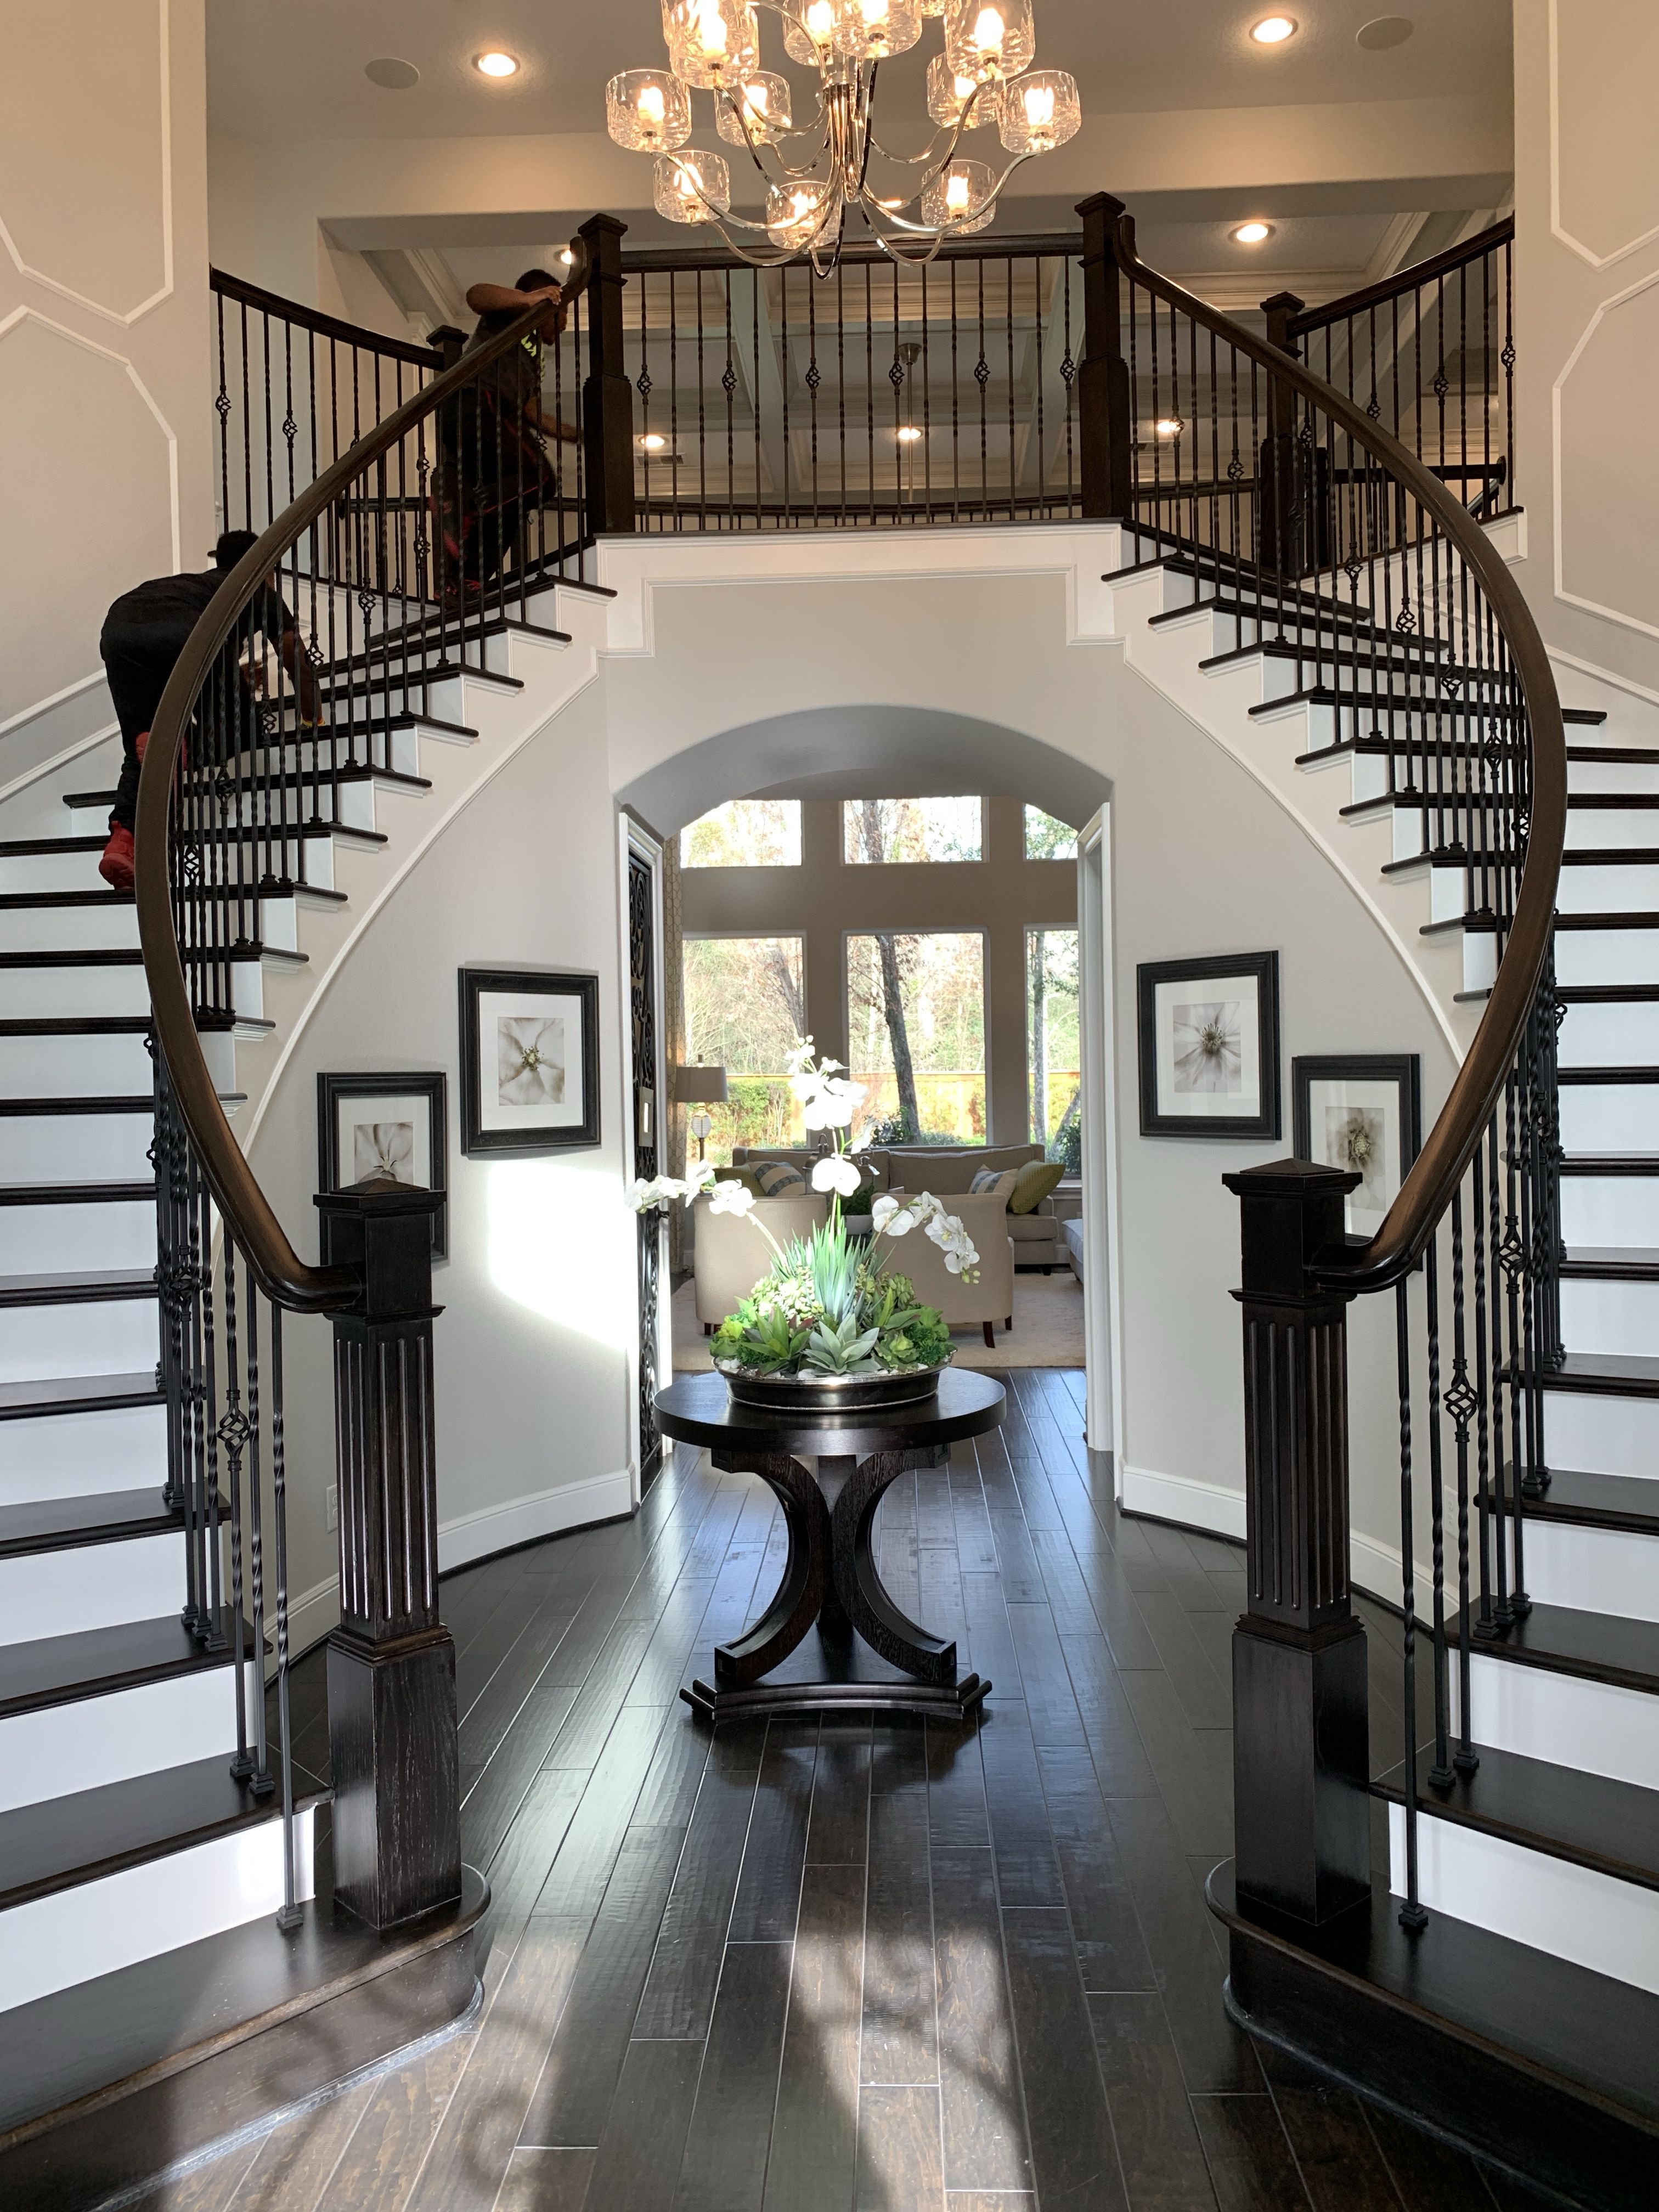 Dream staircase and entry #tollbrothers Toll Brothers ...